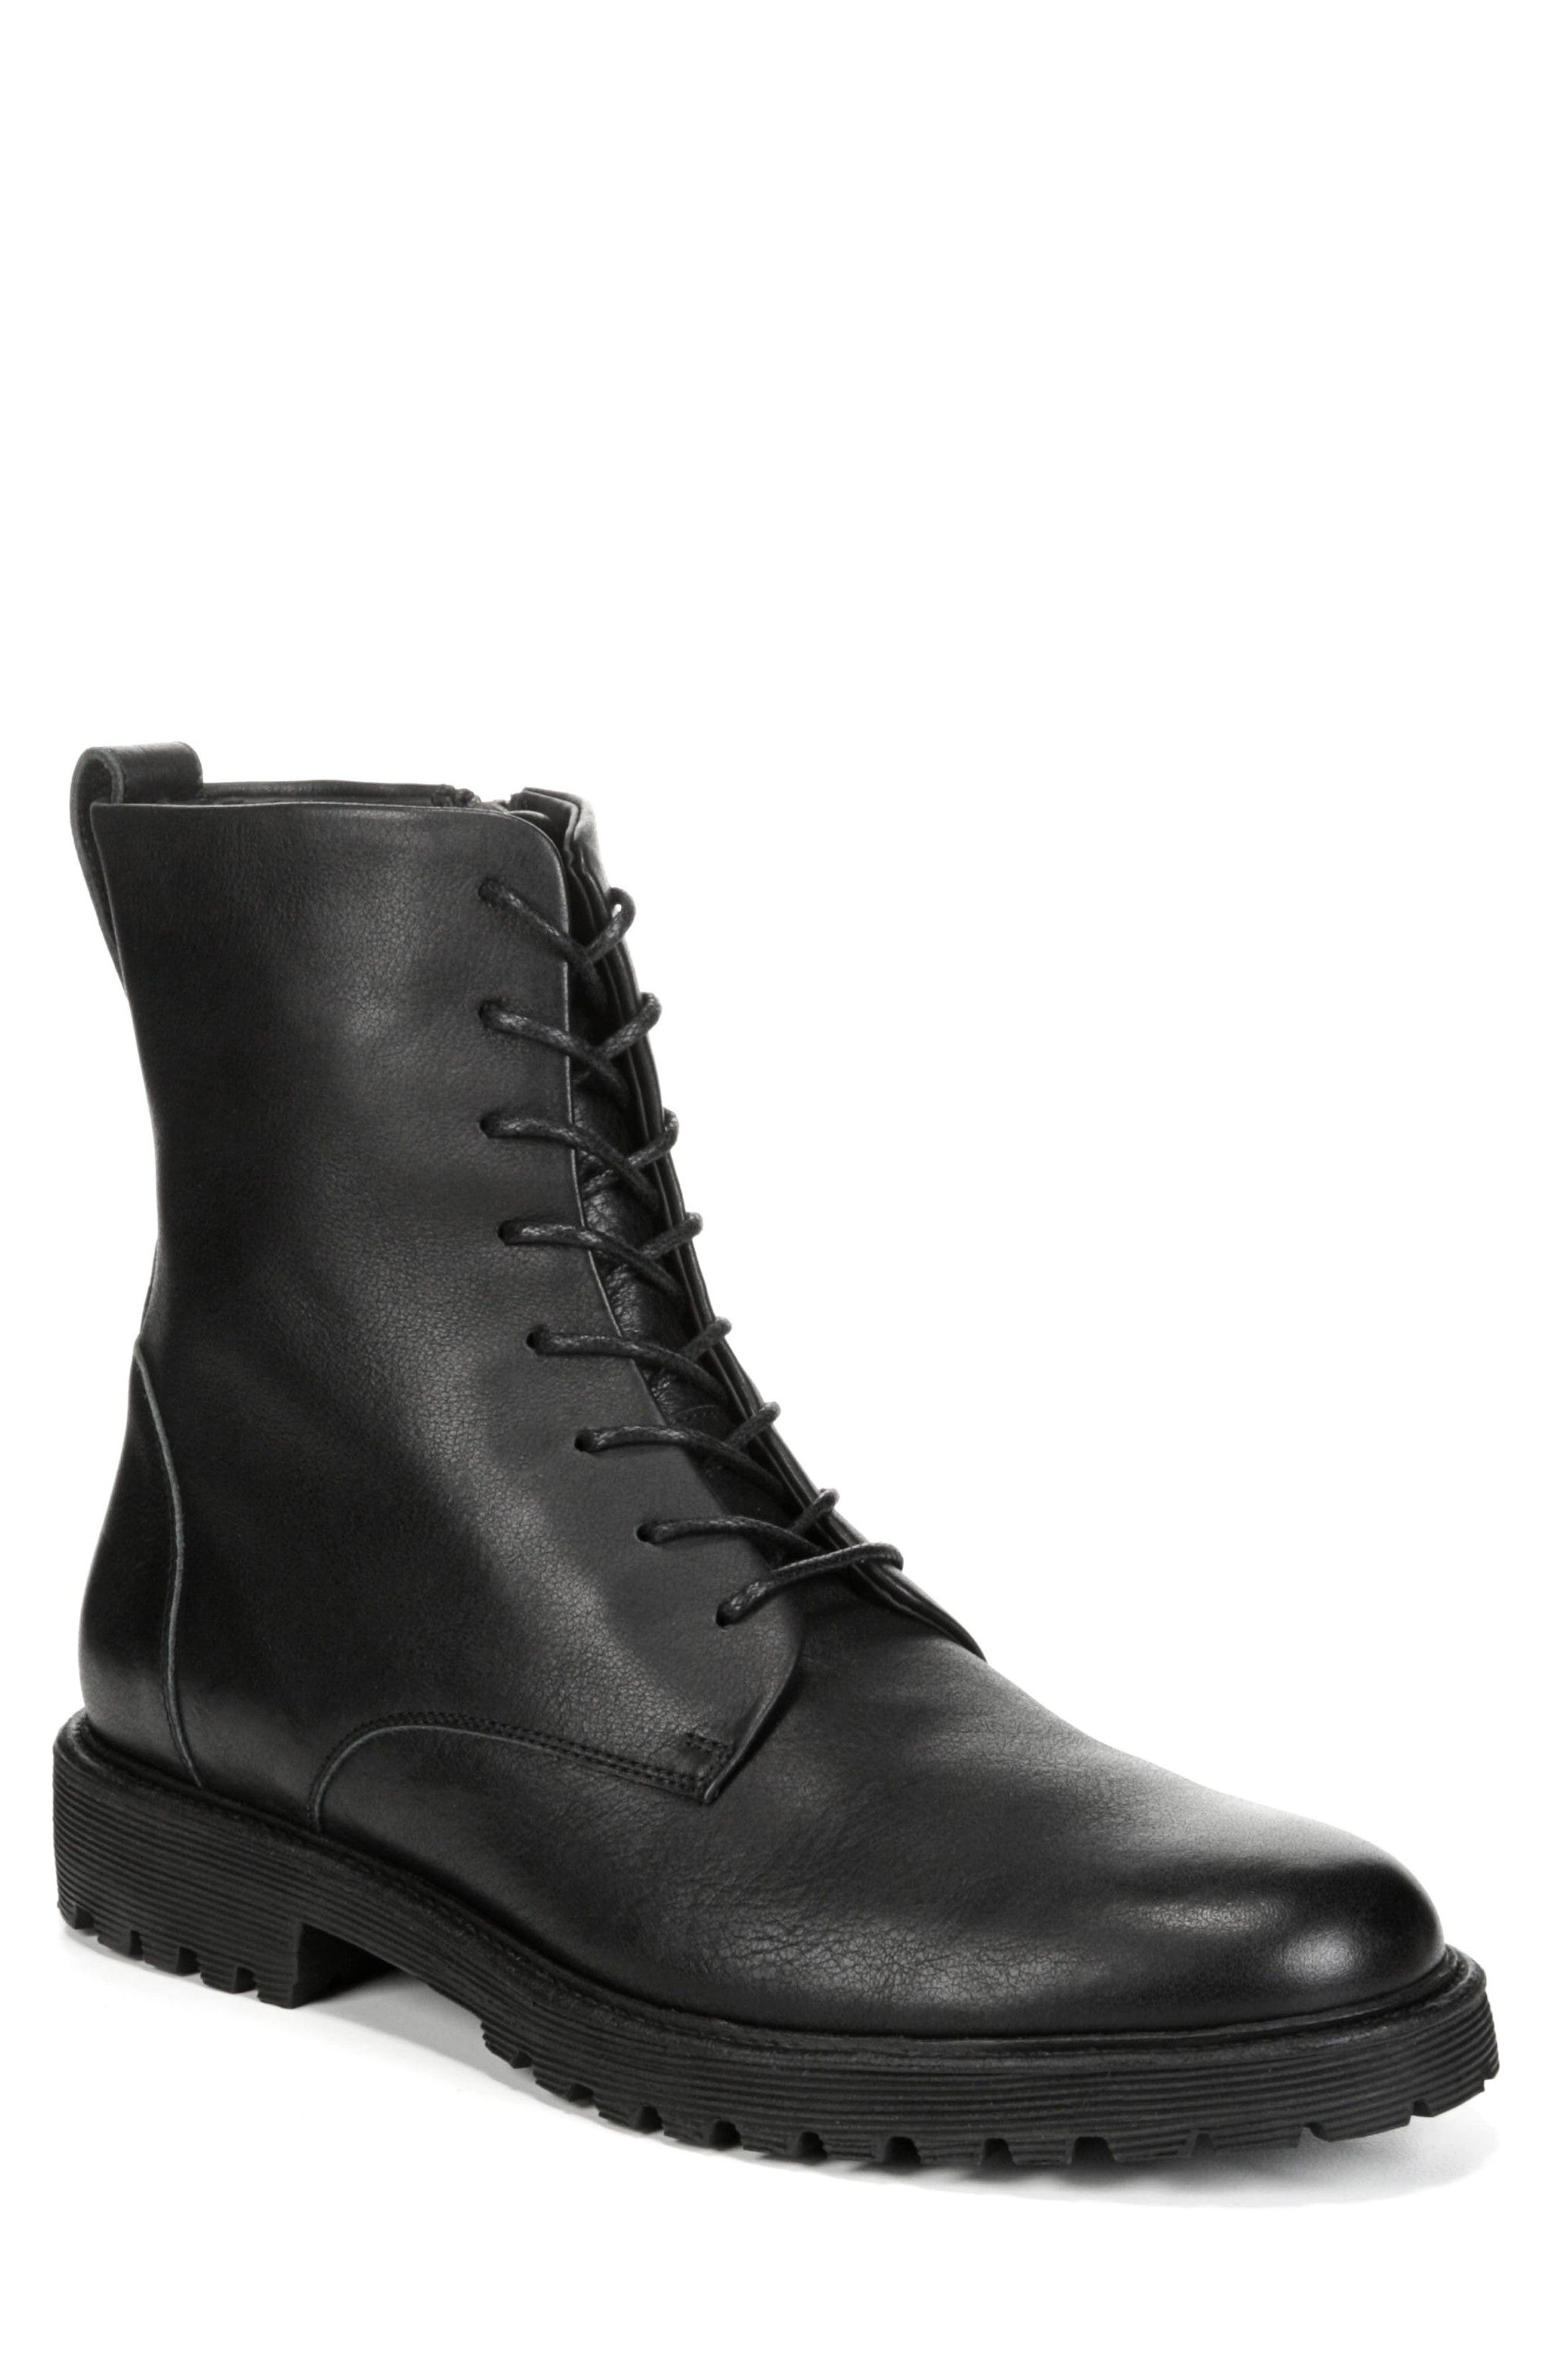 Brigade Plain Toe Boot,                         Main,                         color, Black